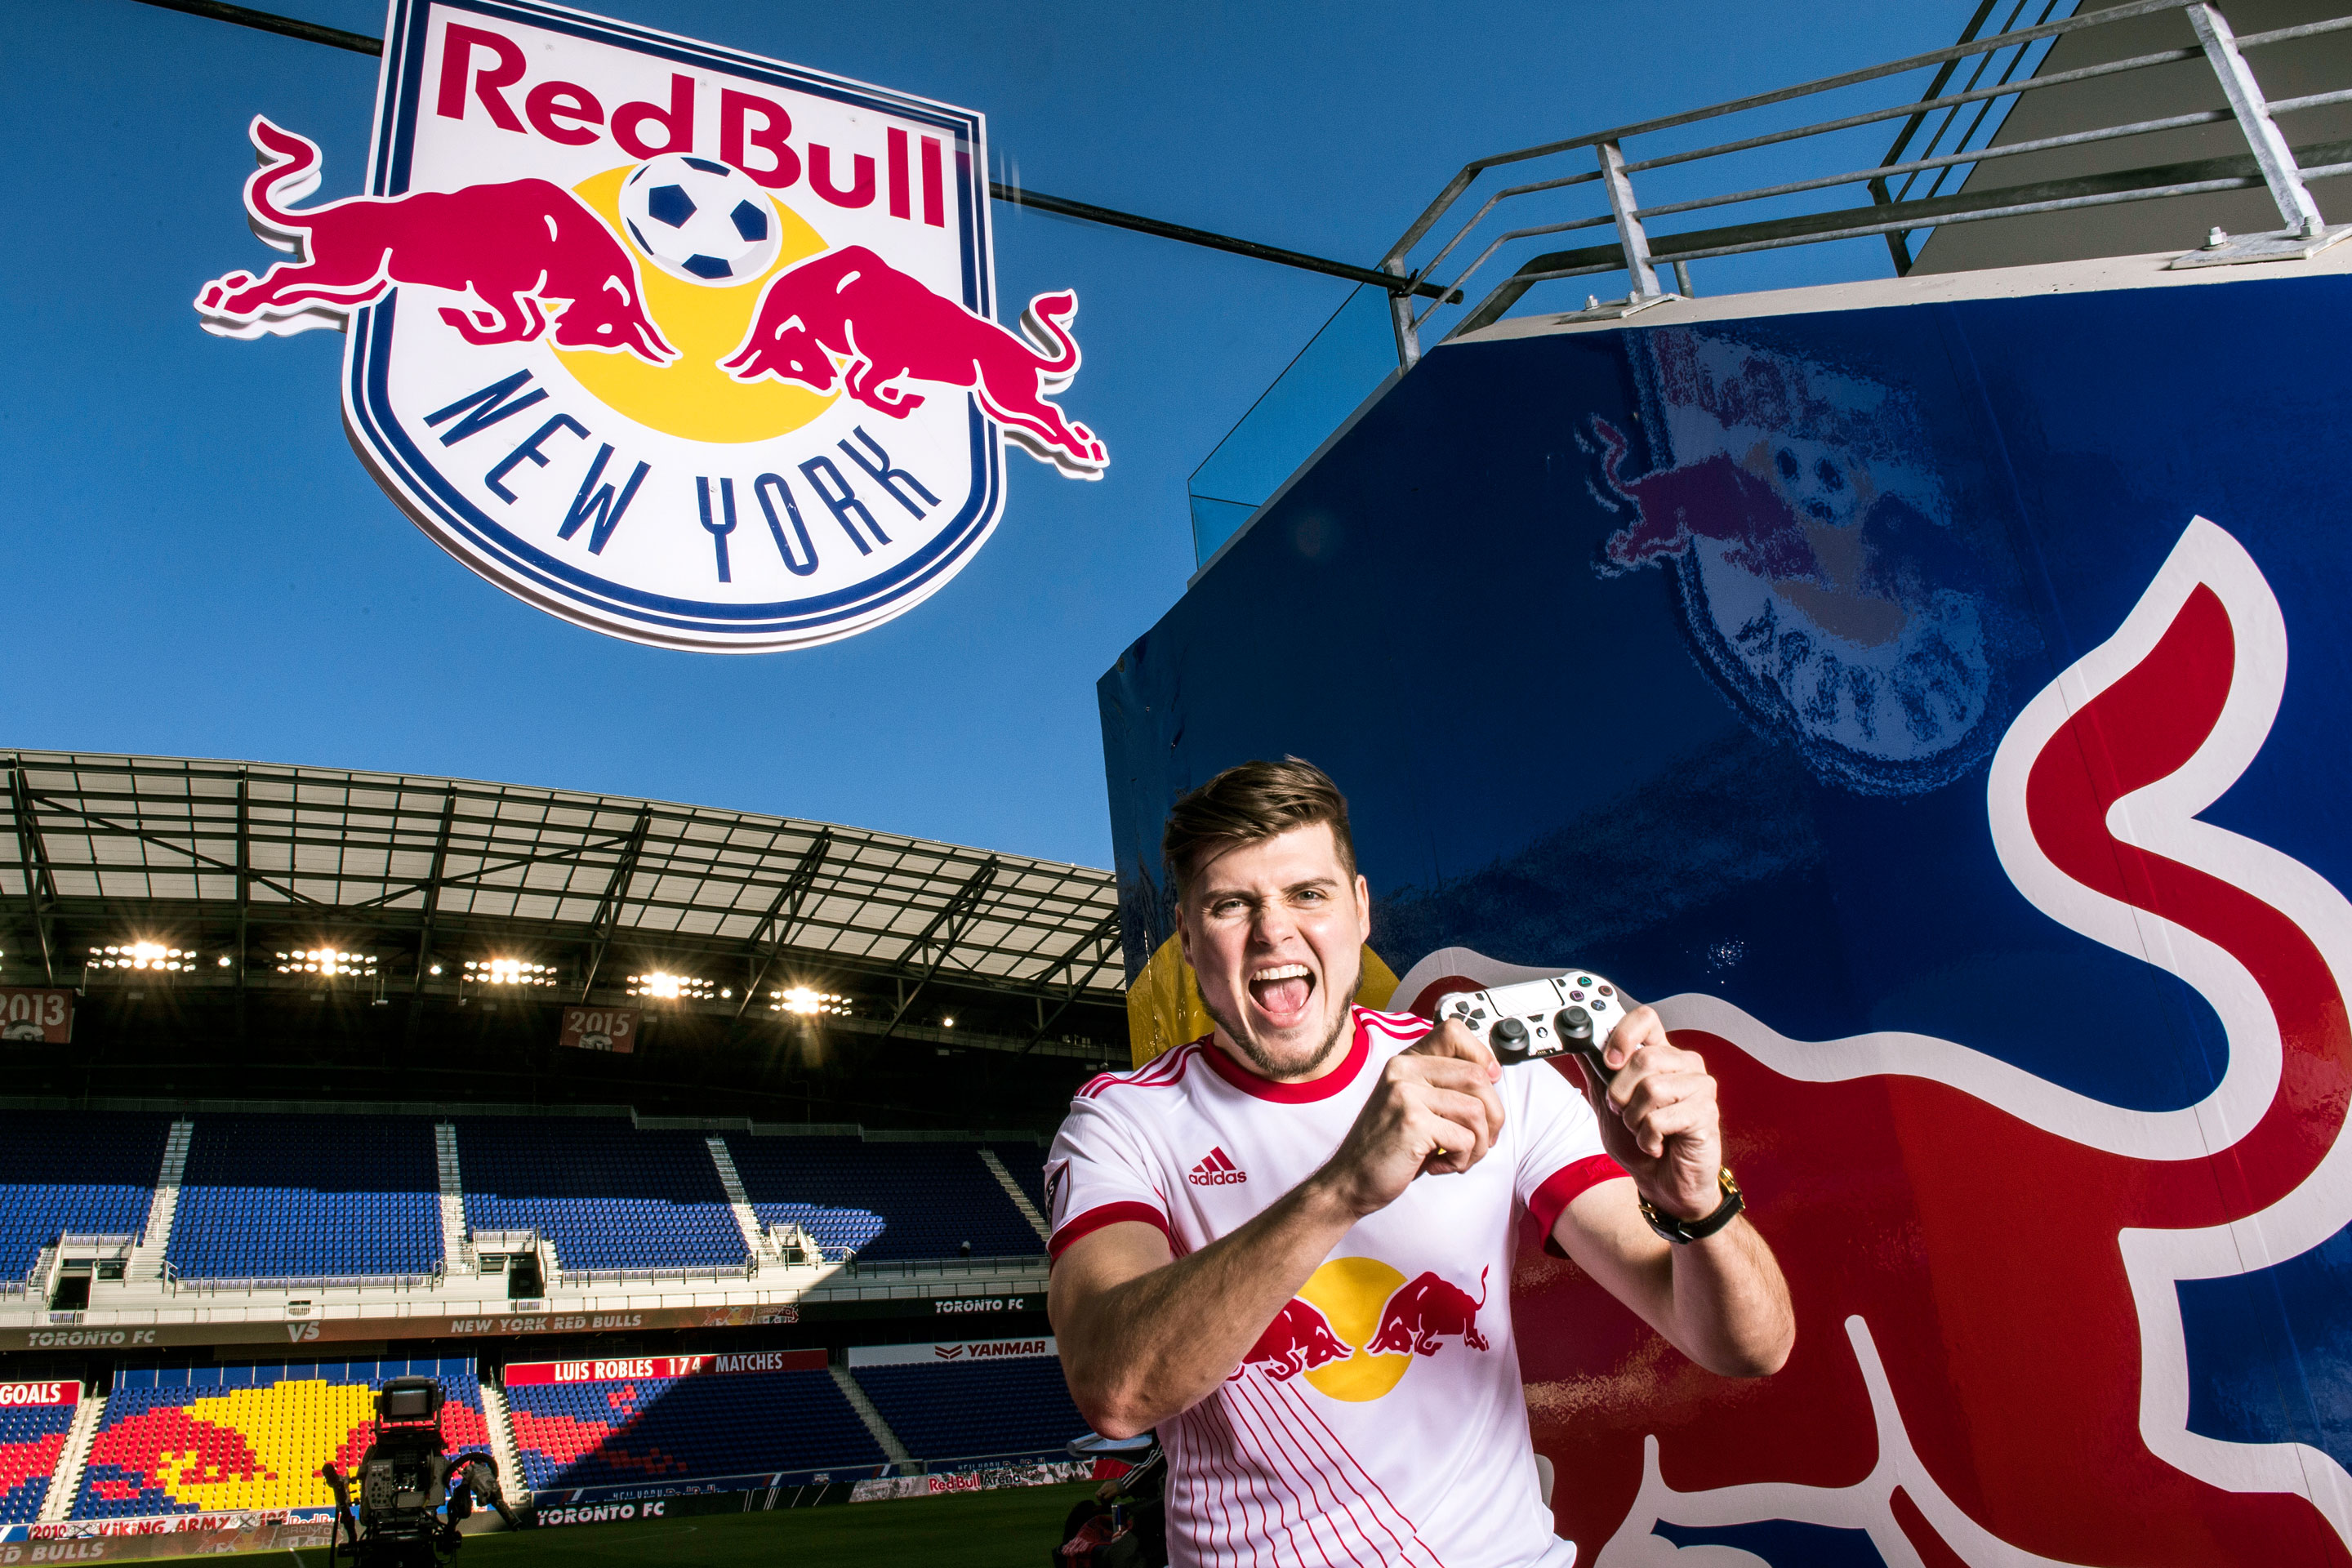 Michael LaBelle in his element at Red Bull Arena in Harrison, N.J.